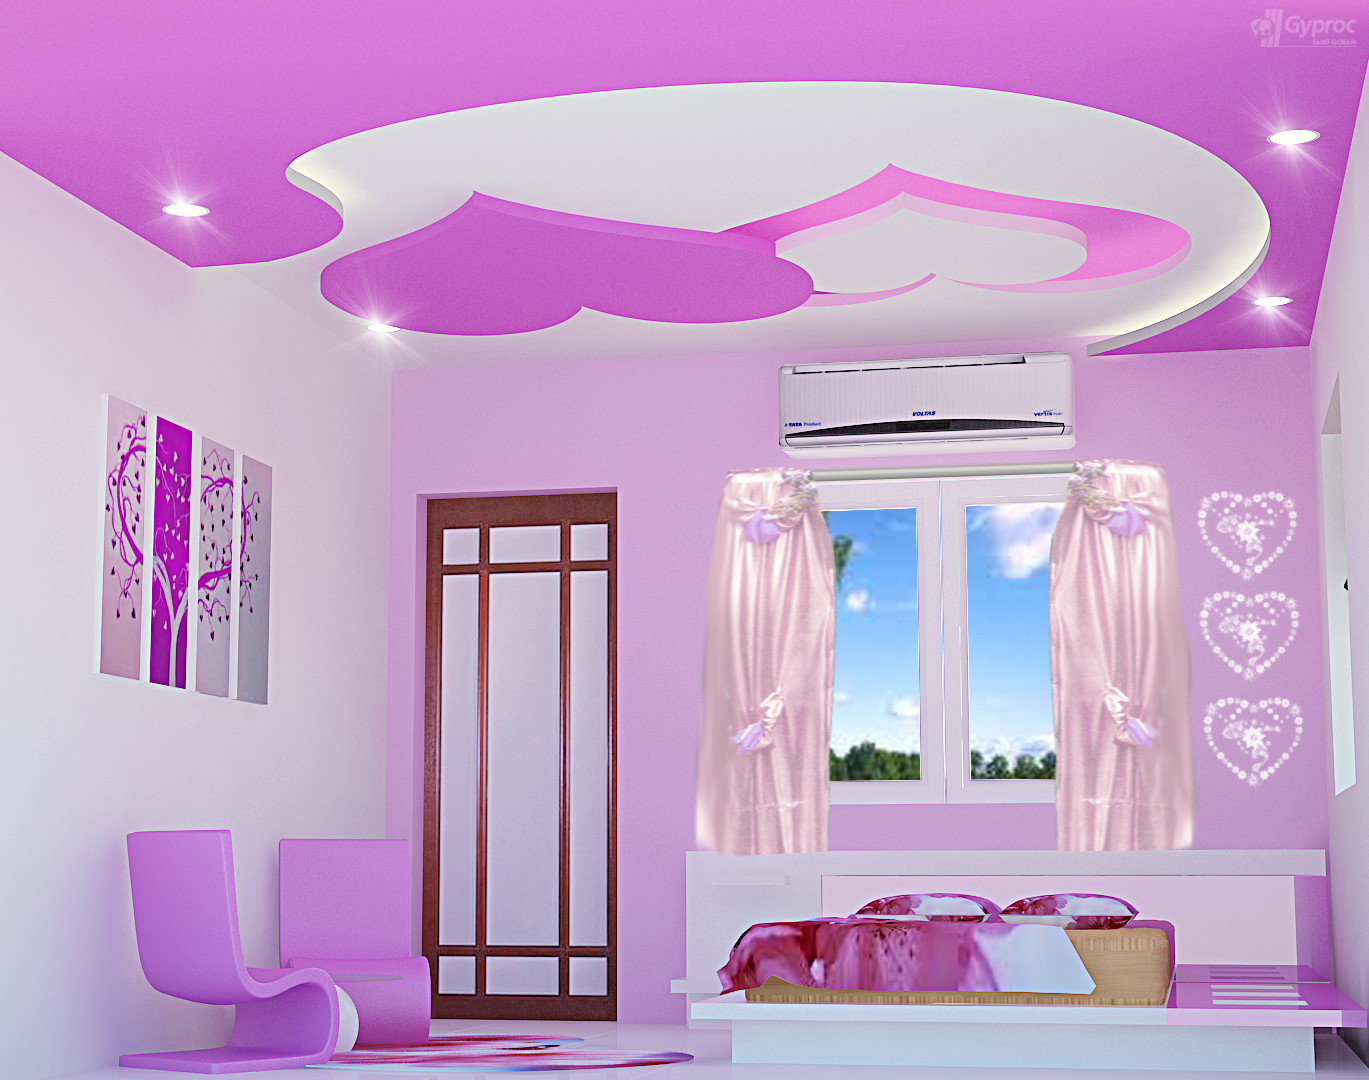 Bedroom Ceiling Decorations